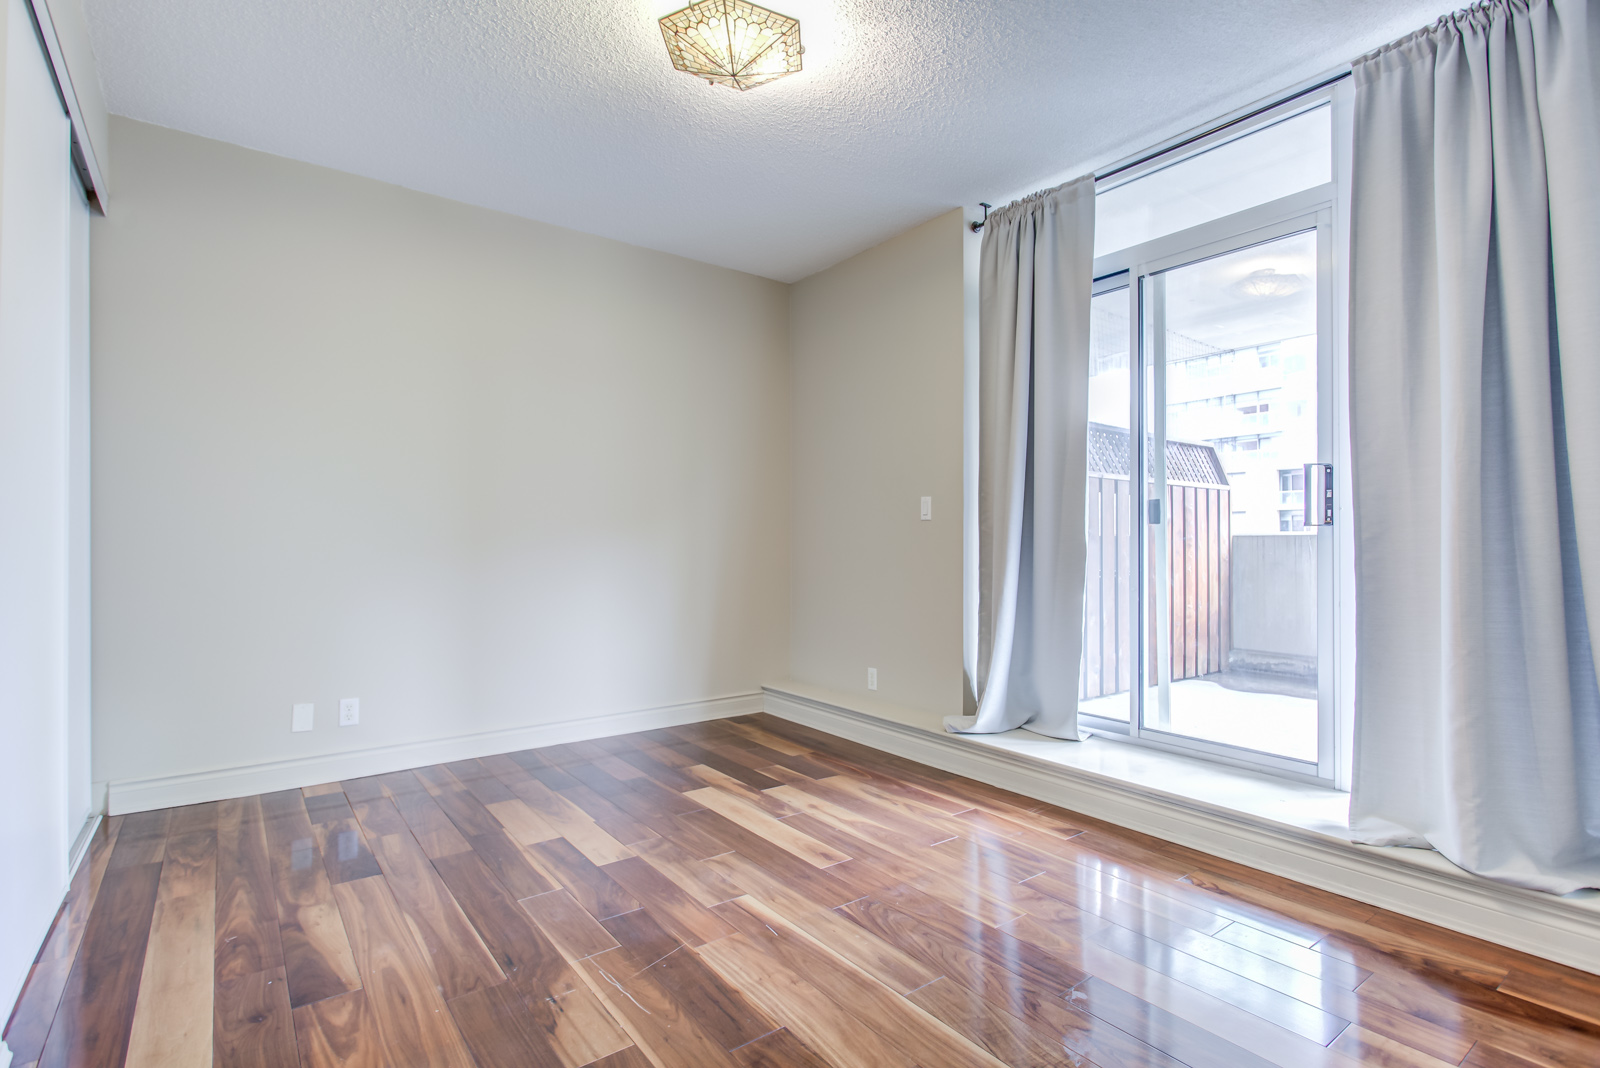 20 Collier St Unit 408 master bedroom without bed or any furniture.